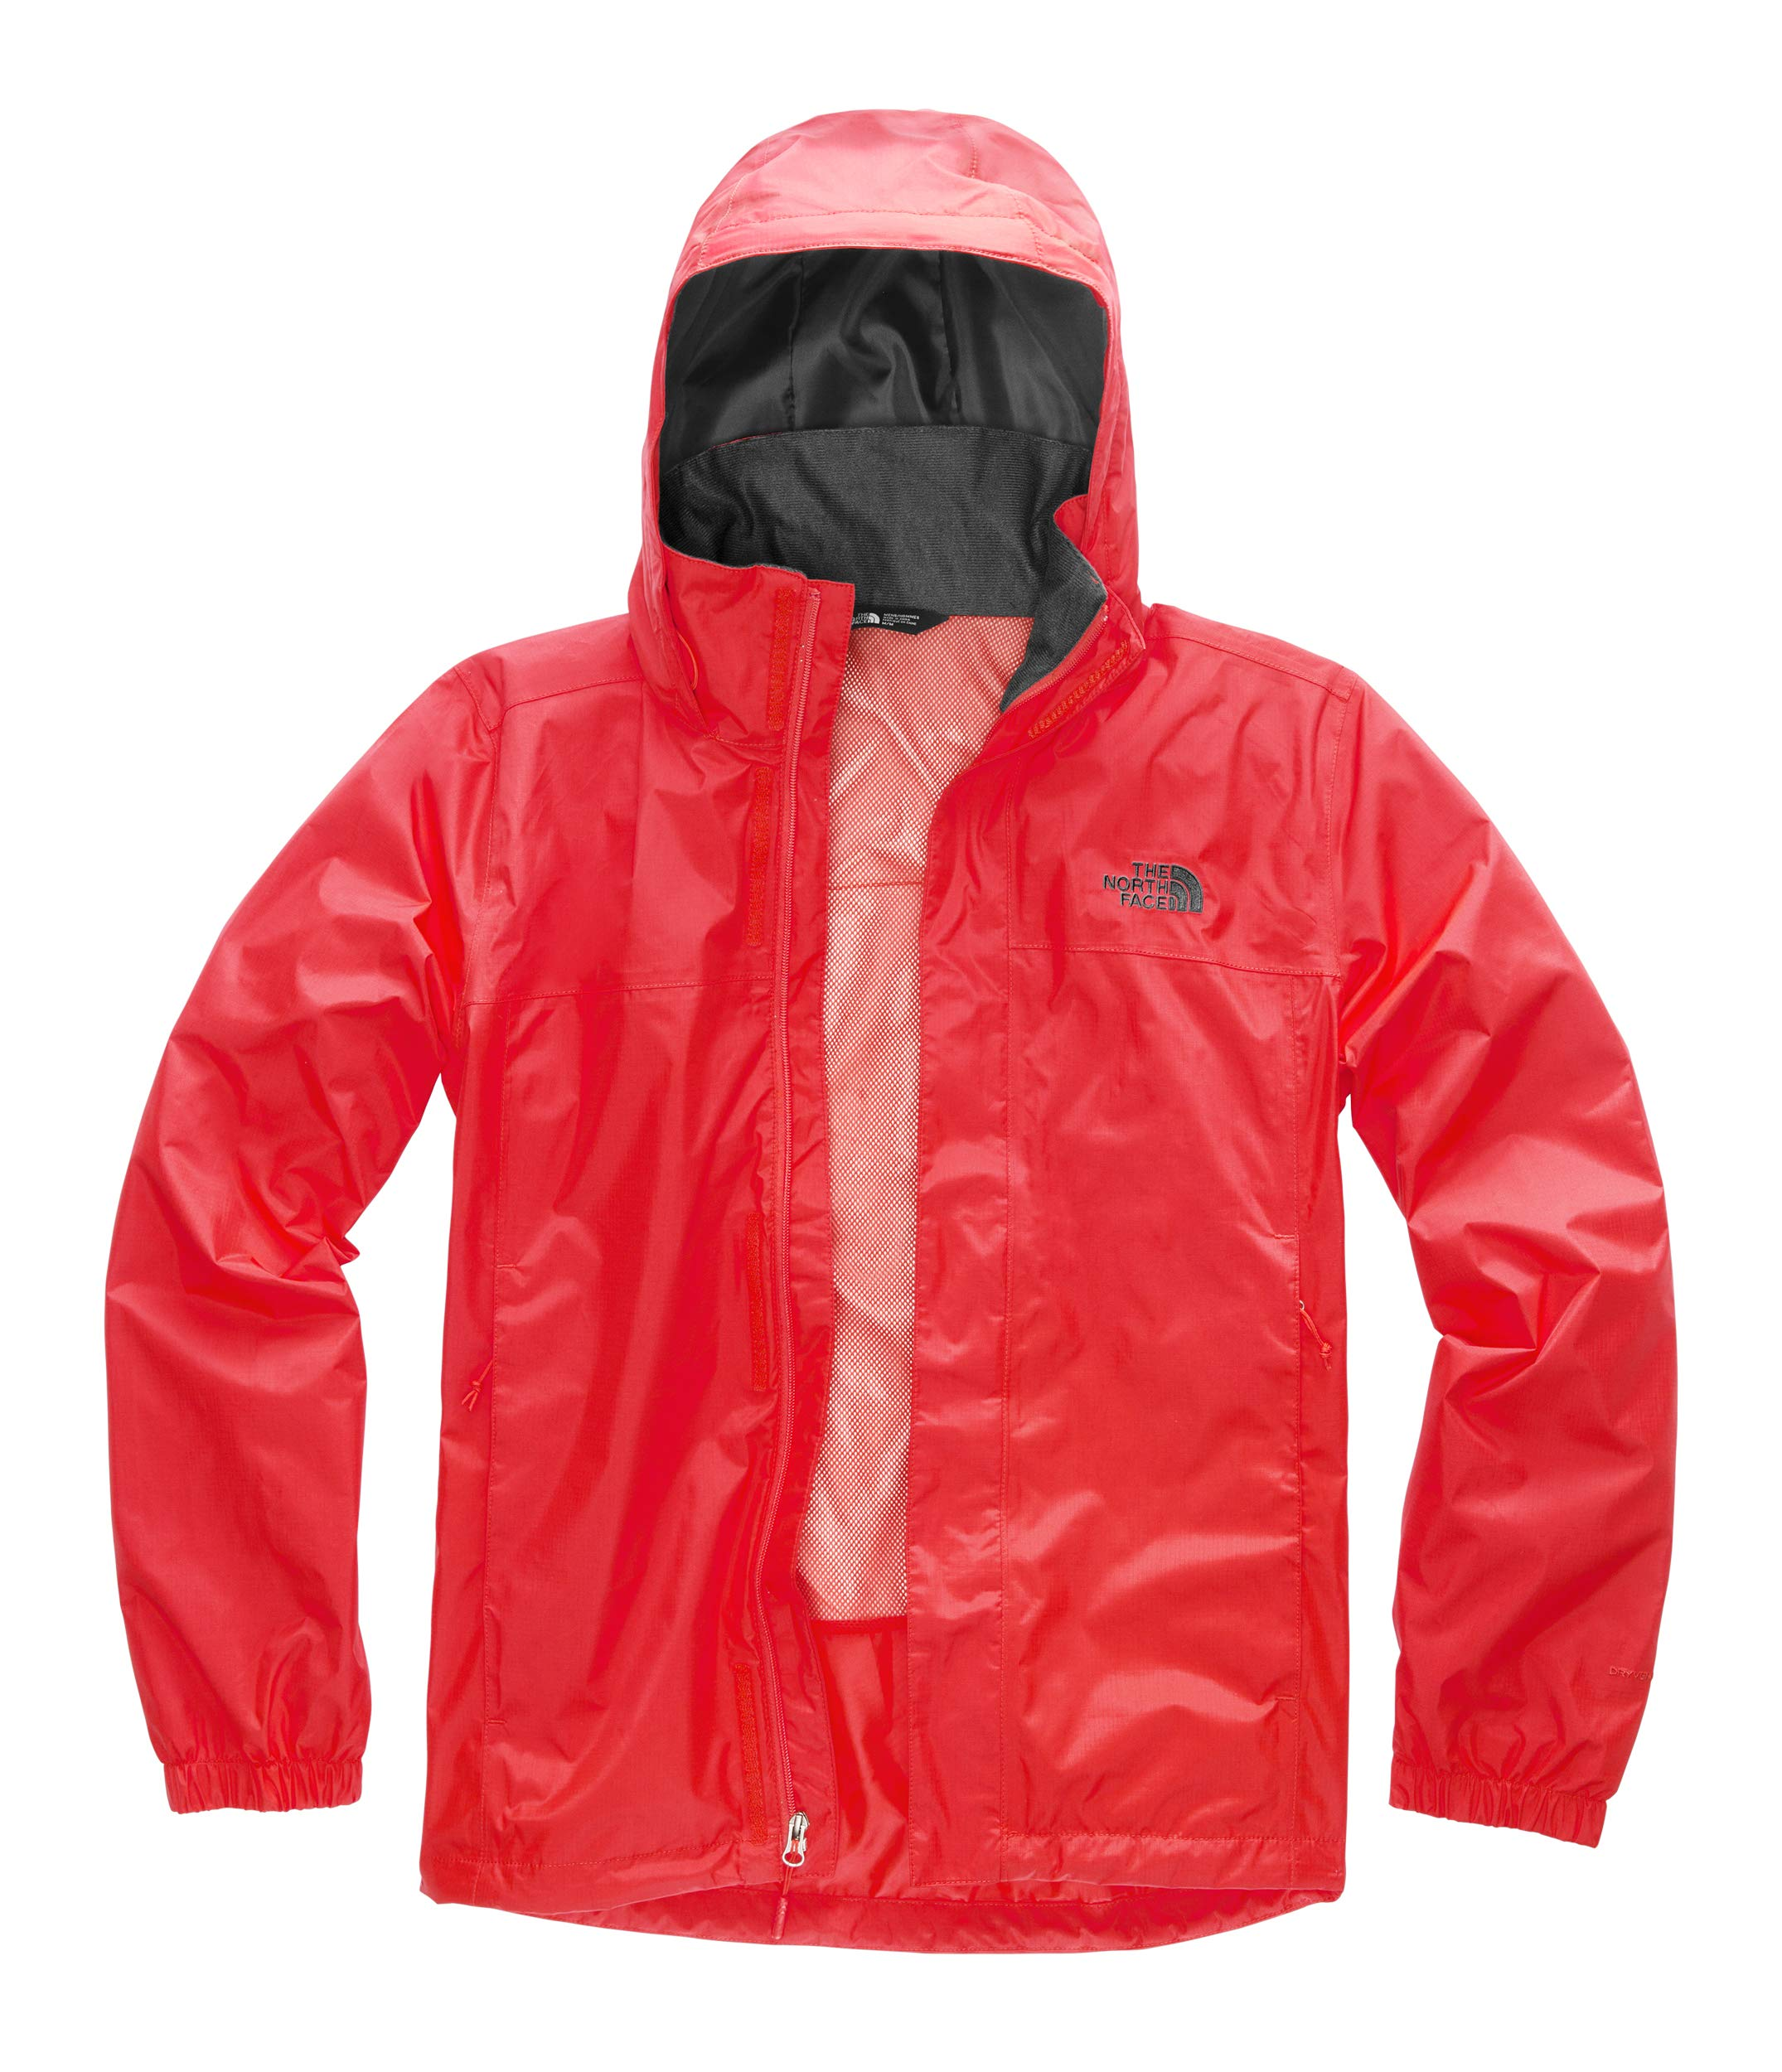 The North Face Men's Resolve 2 Jacket Fiery Red/Asphalt Grey Large by The North Face